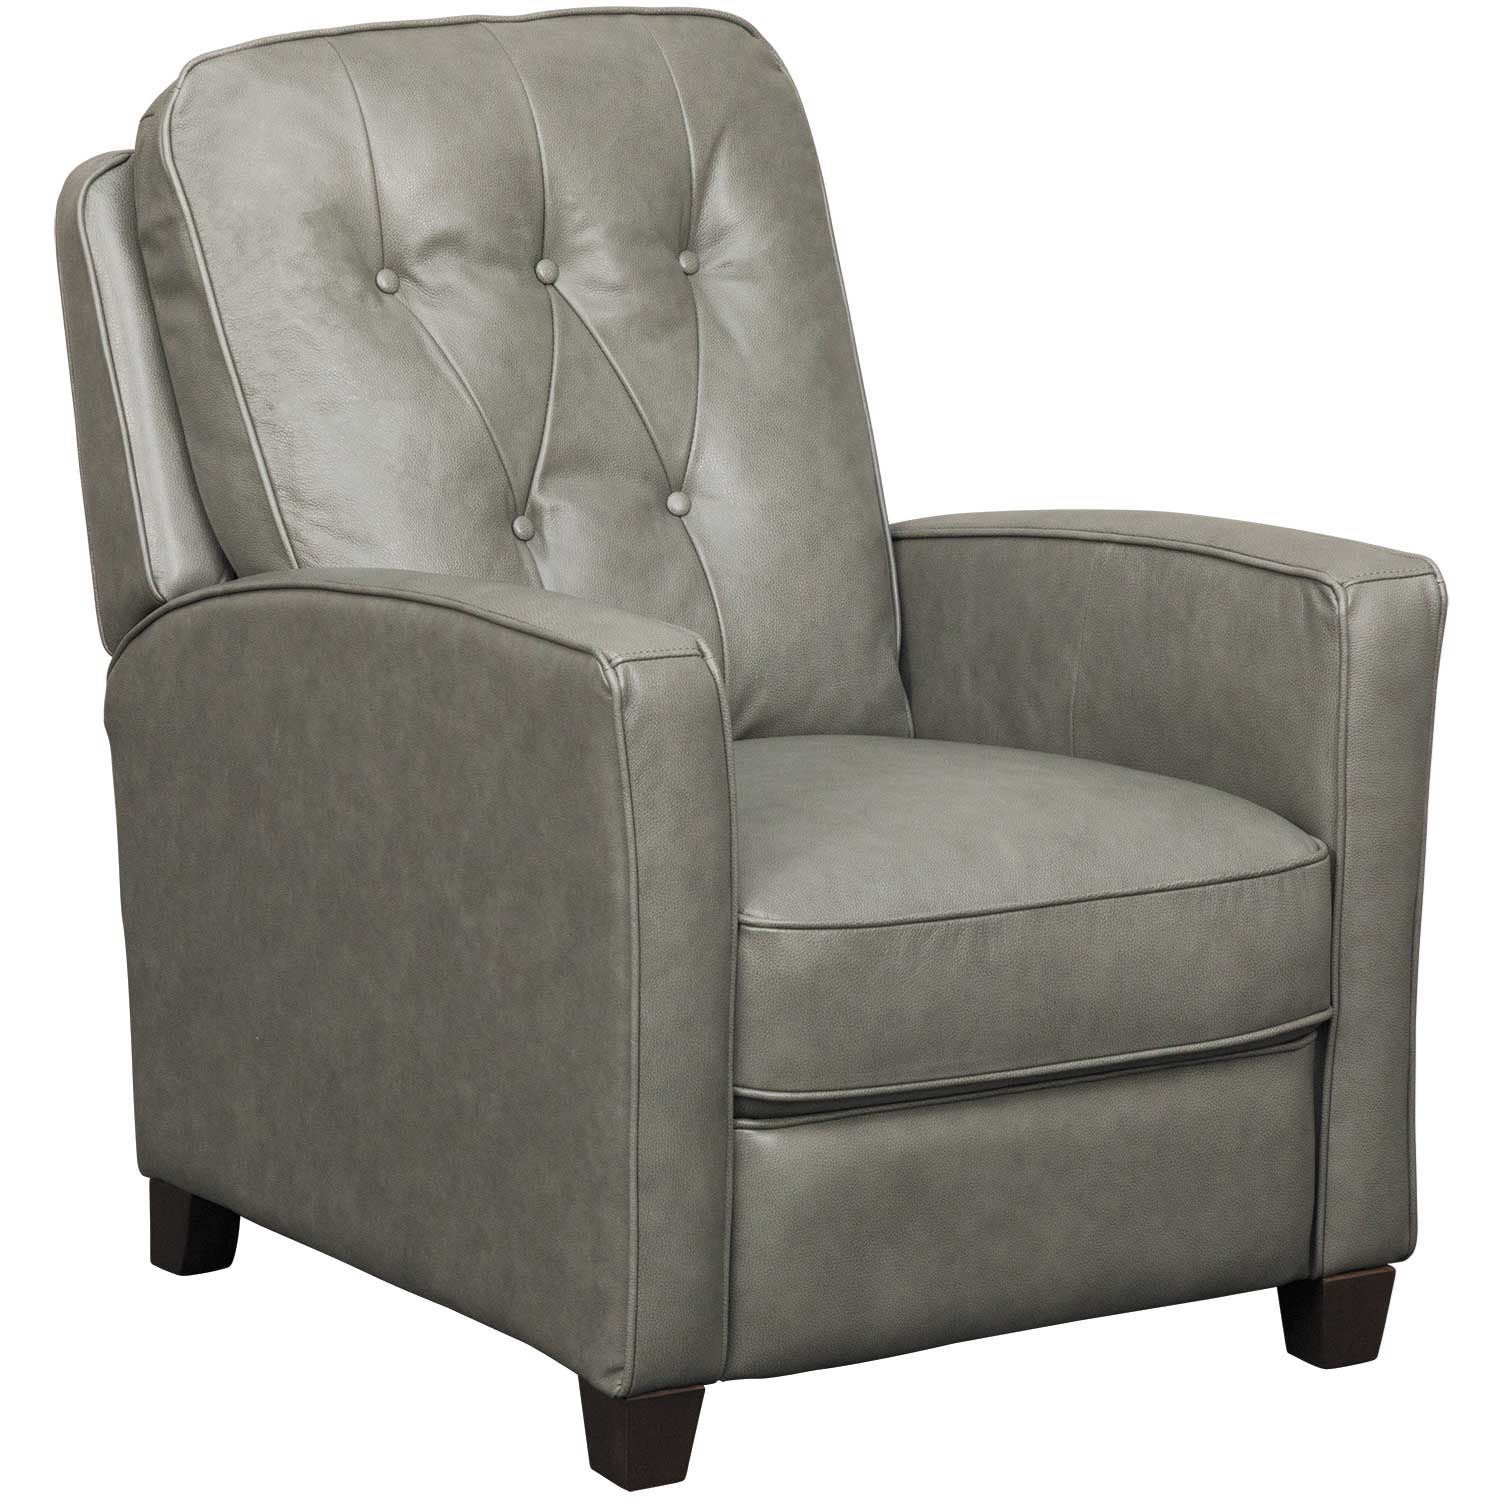 Push Back Chair Quinn Granite Leather Push Back Recliner 1659 86 Livorno